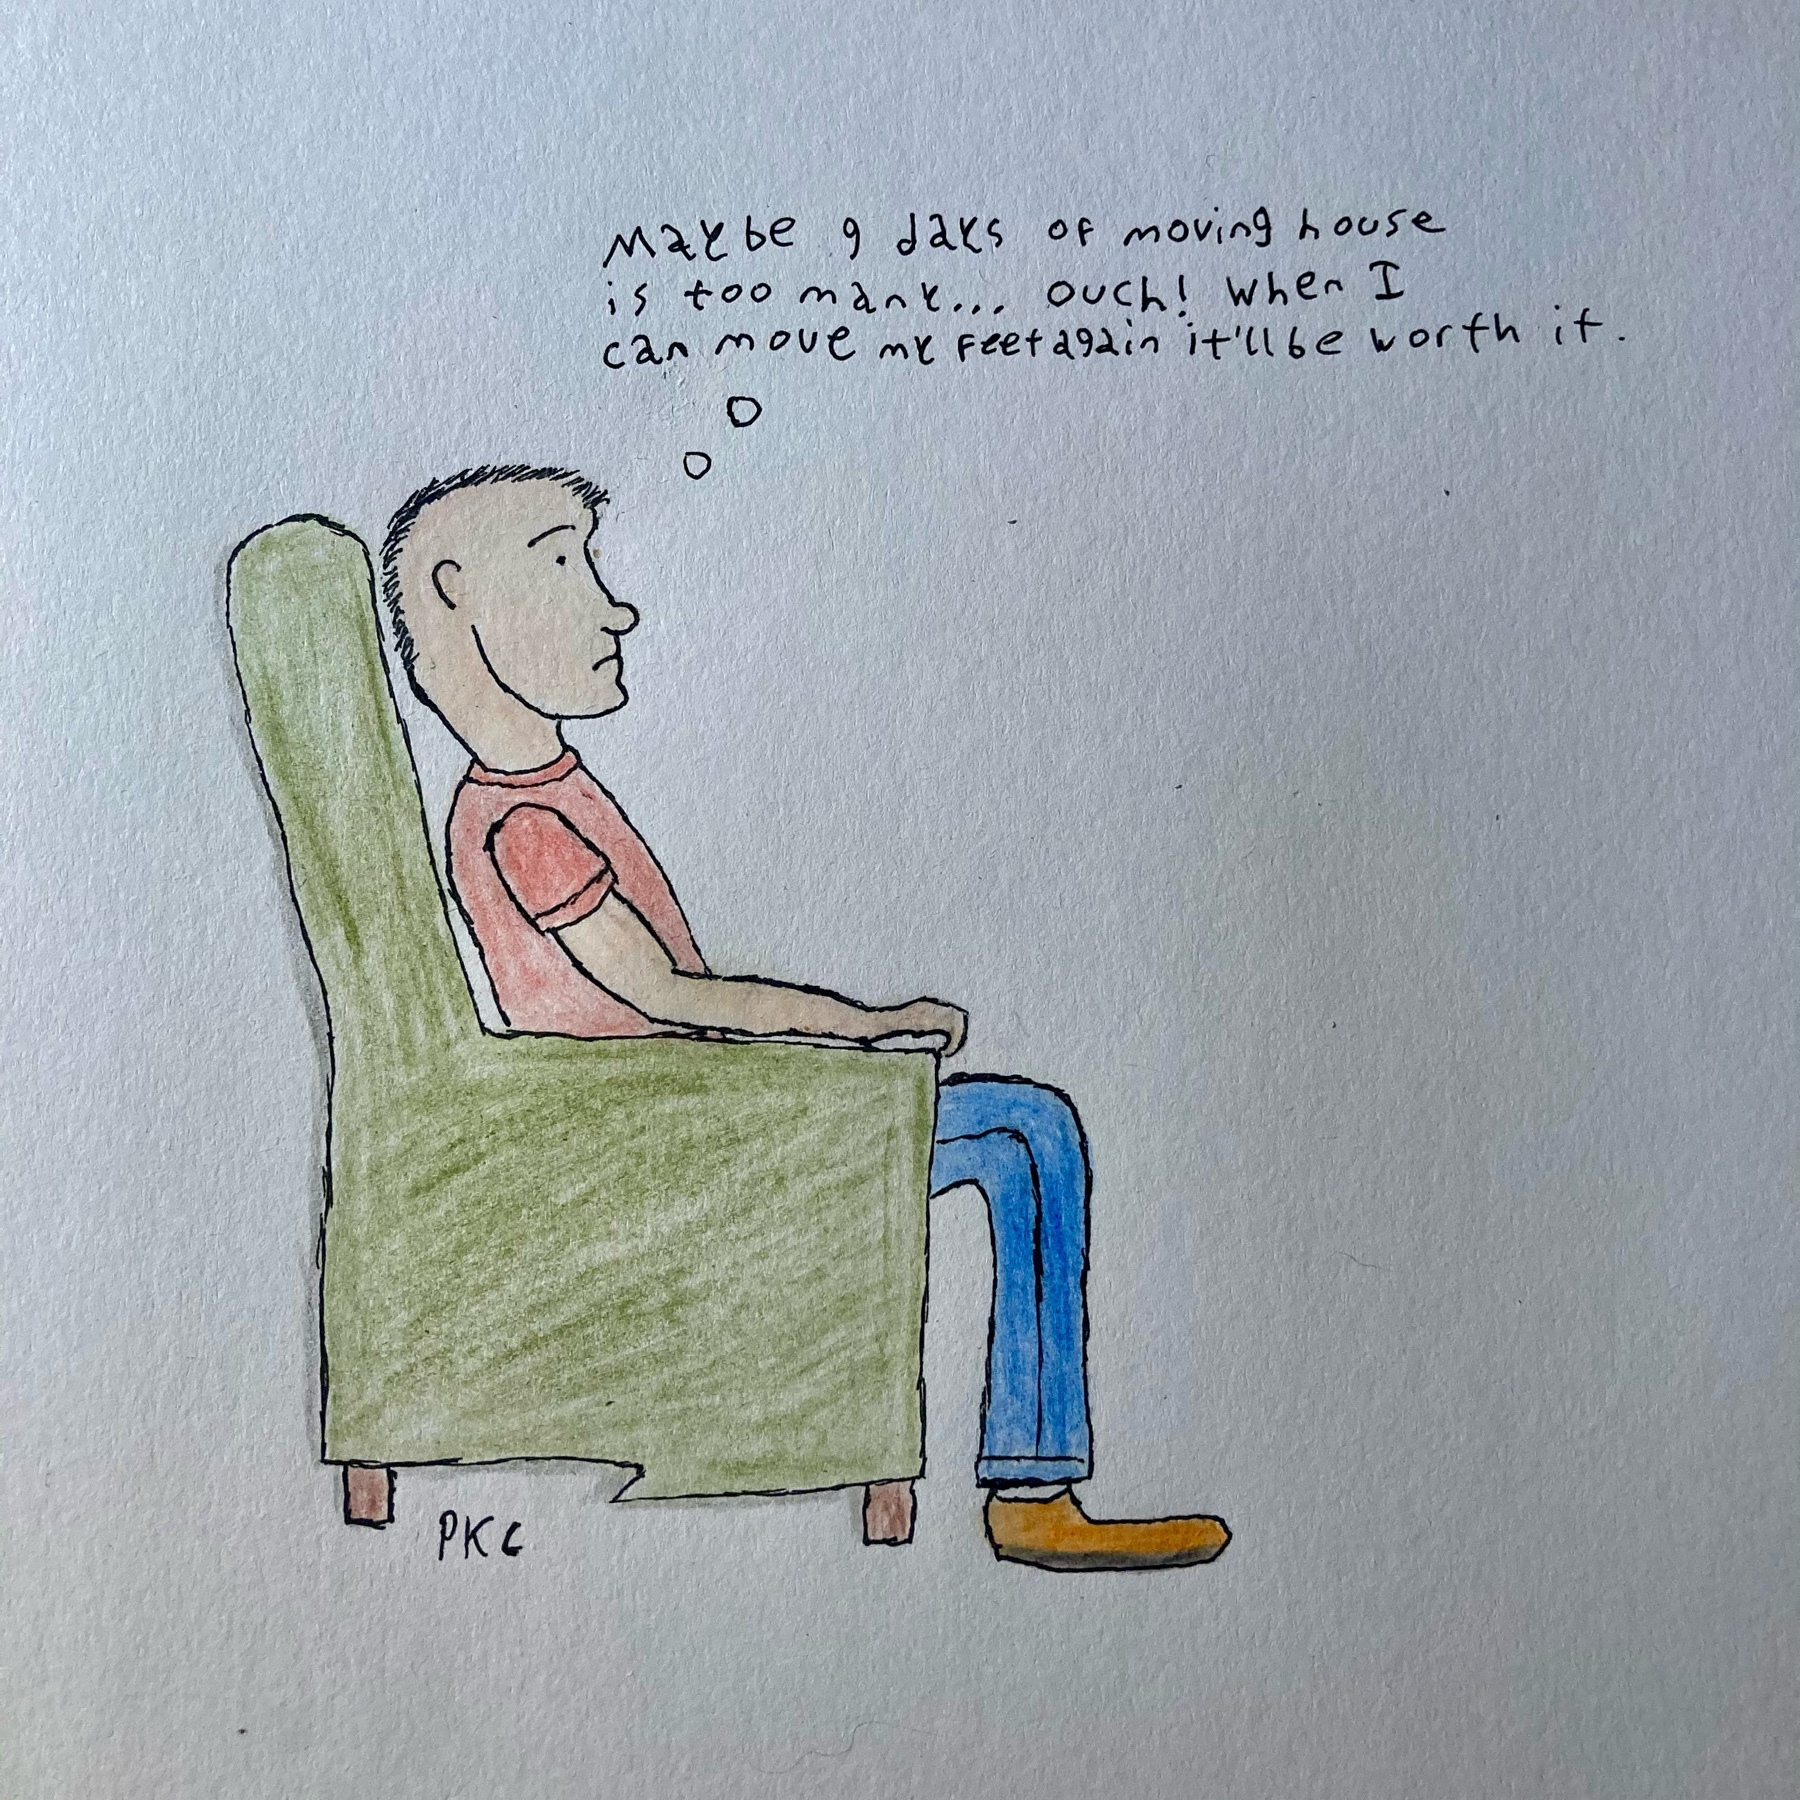 man slouched in chair: maybe 9 days of moving is too many. ouch! when I can move my feet again, it'll be worth it